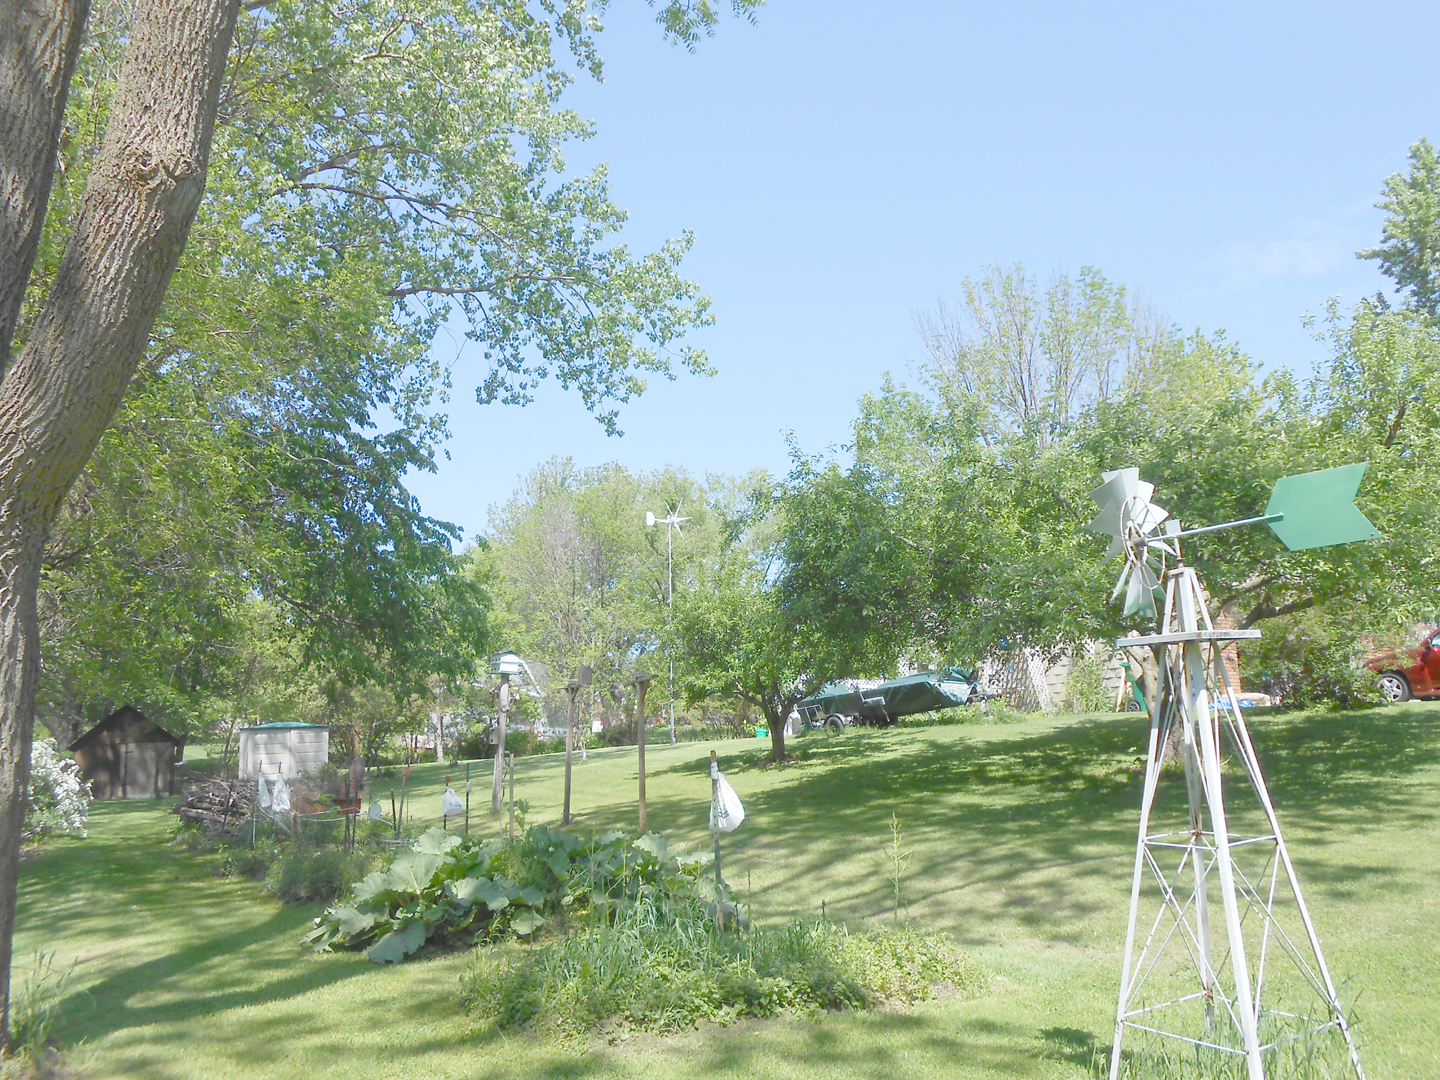 Wind Turbine Installation Instructions Generator 3 Phase Wiring Diagram Get Free Image About The Surrounding Trees And It Does Not Up To Full Speeds Is In Center Of This Photo Hard Spot One On Right